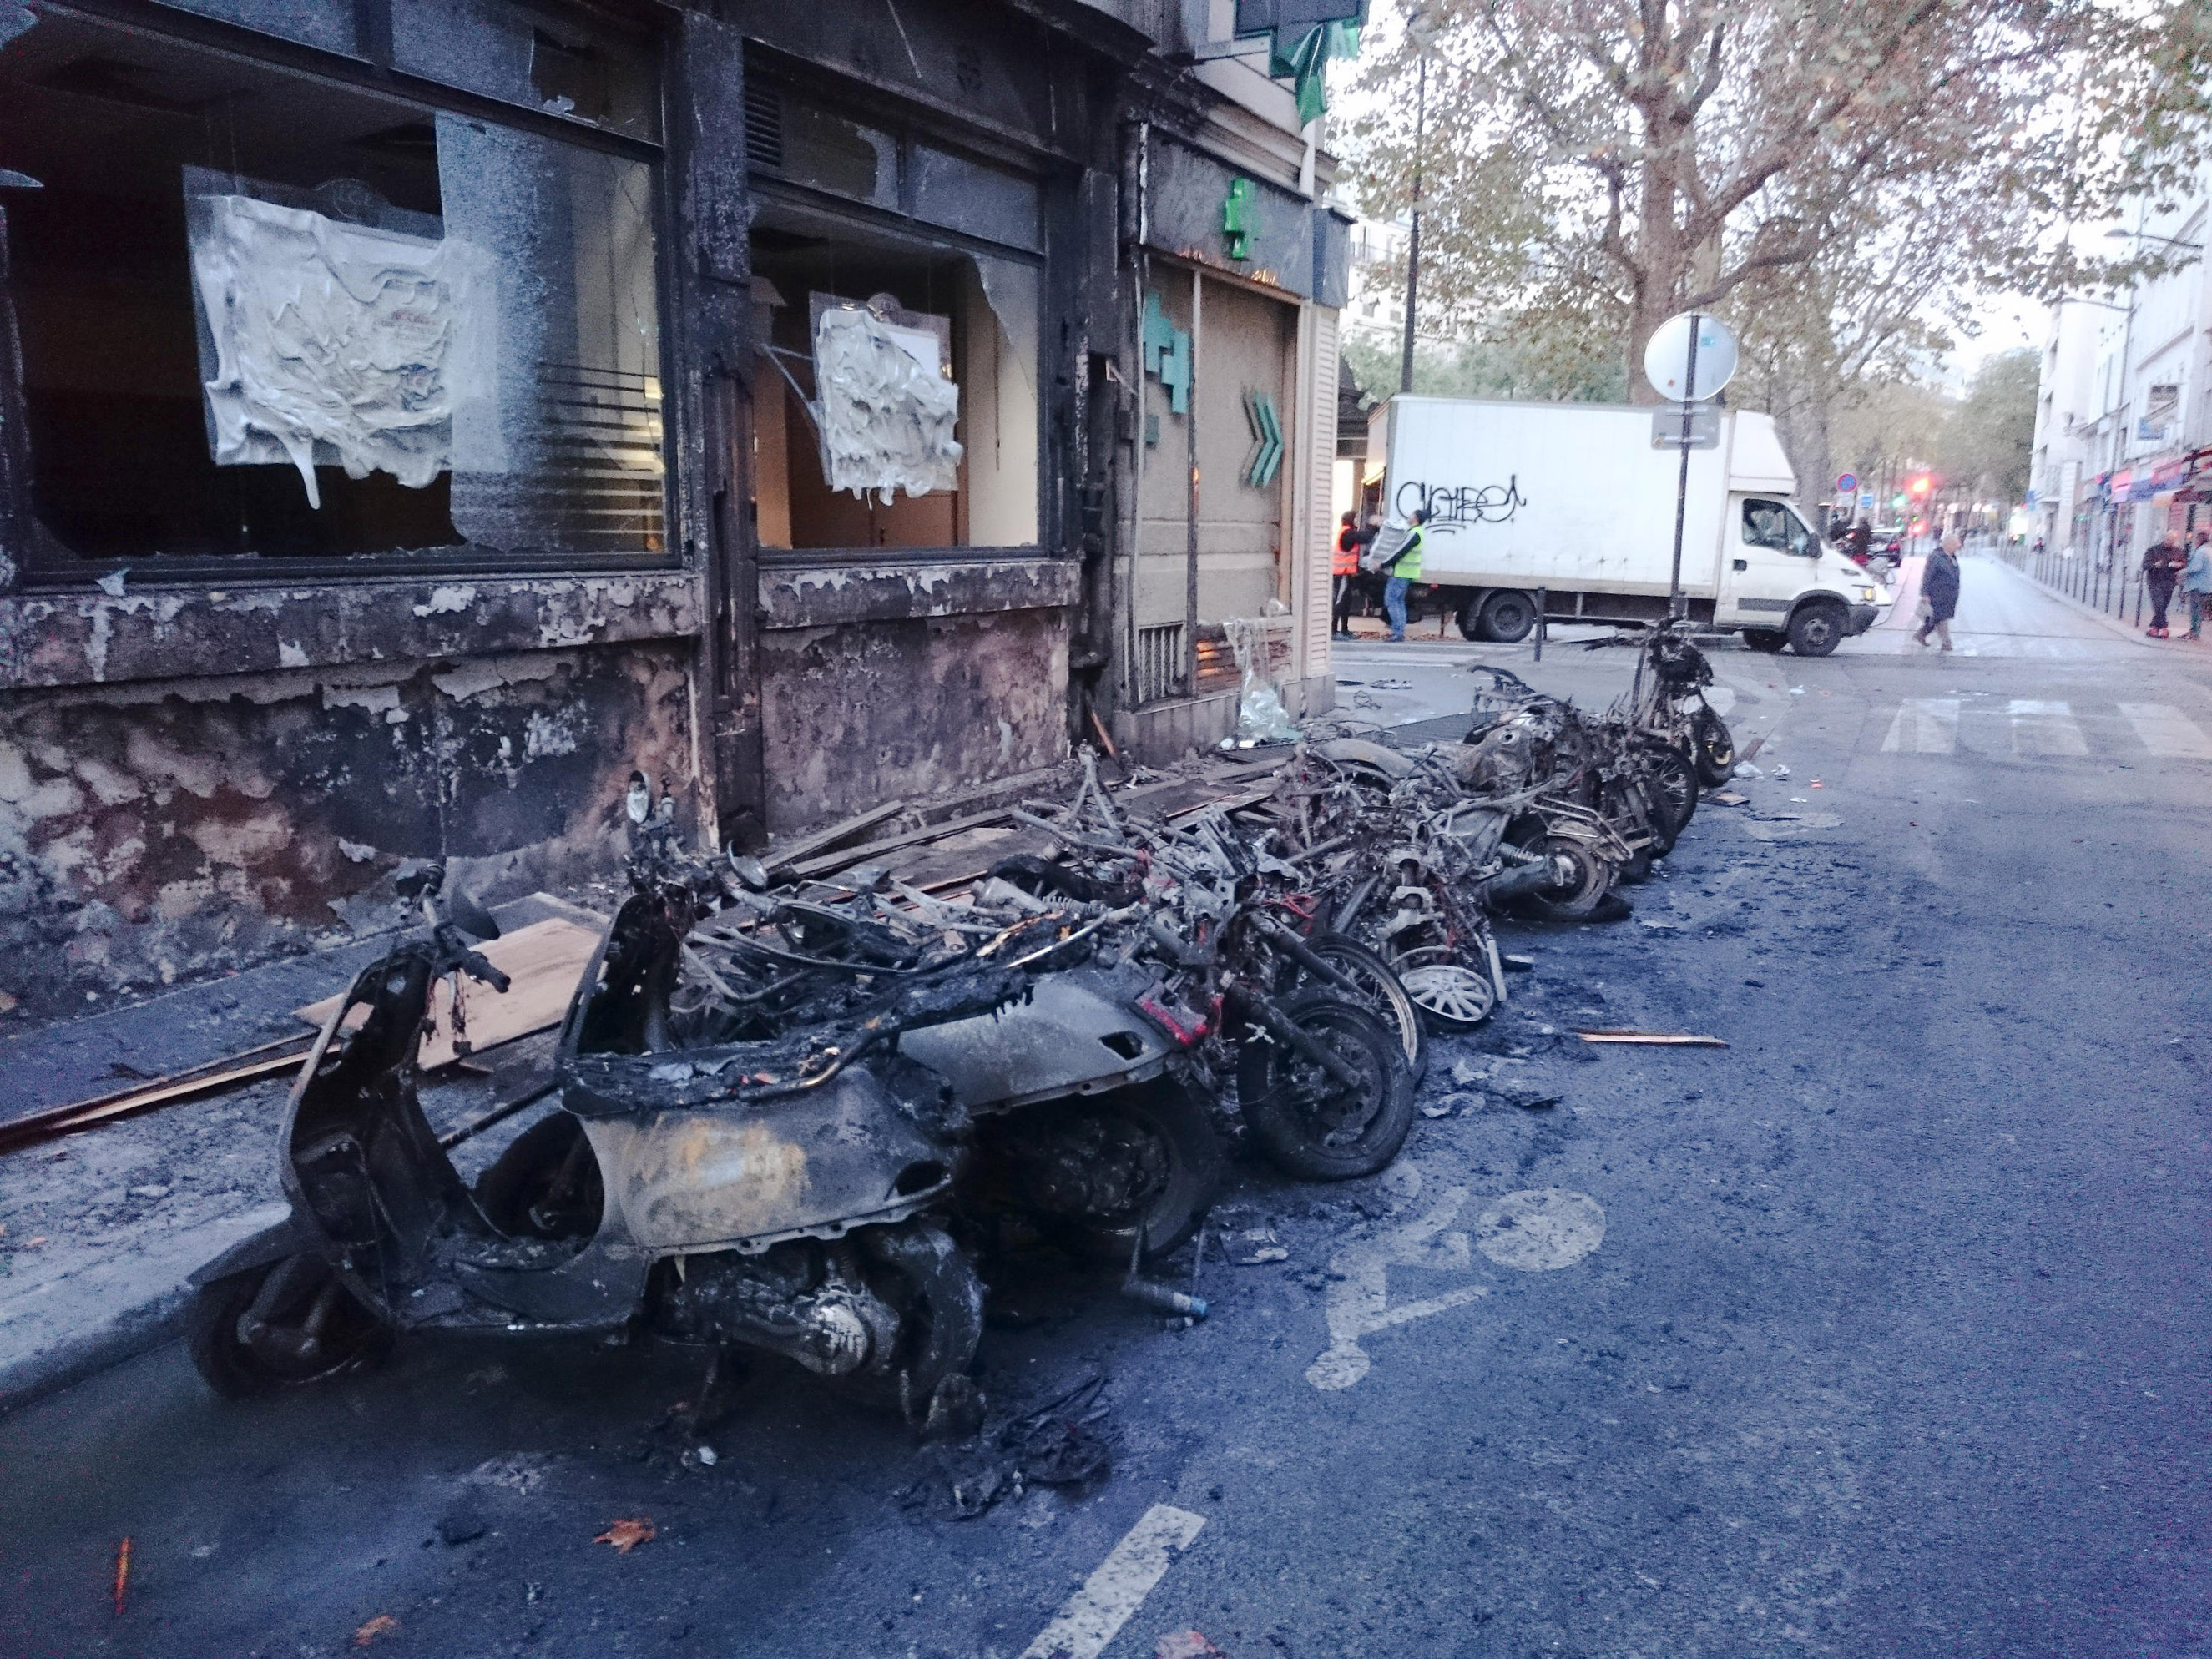 Burnt motorbikes and bicycles on the corner of Albert Thomas Lancry streets, in the 10th arrondissement of Paris, on Nov. 14, 2015, the morning after the attacks across the city.